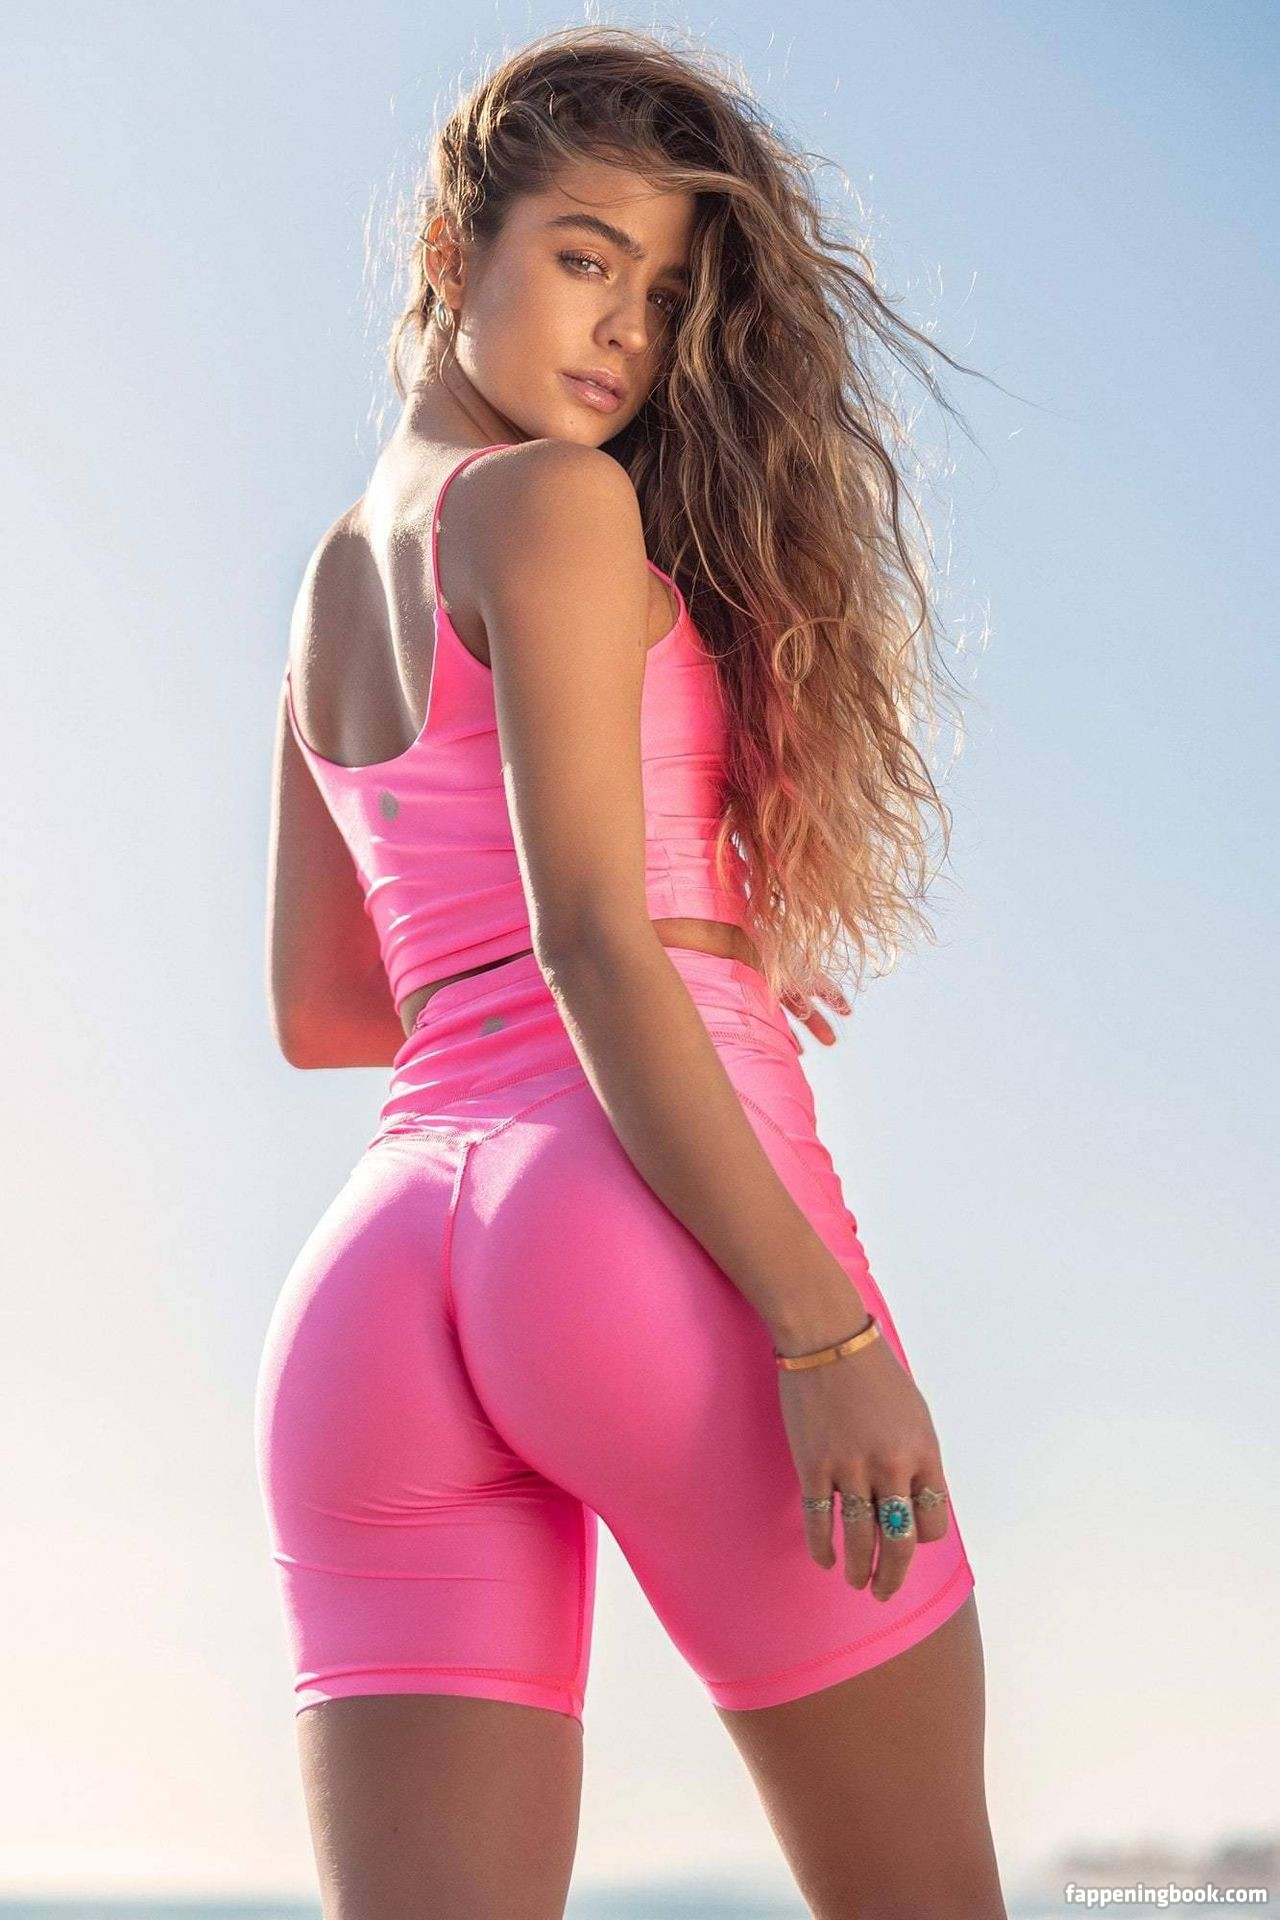 Sommer Ray Nude, Sexy, The Fappening, Uncensored - Photo